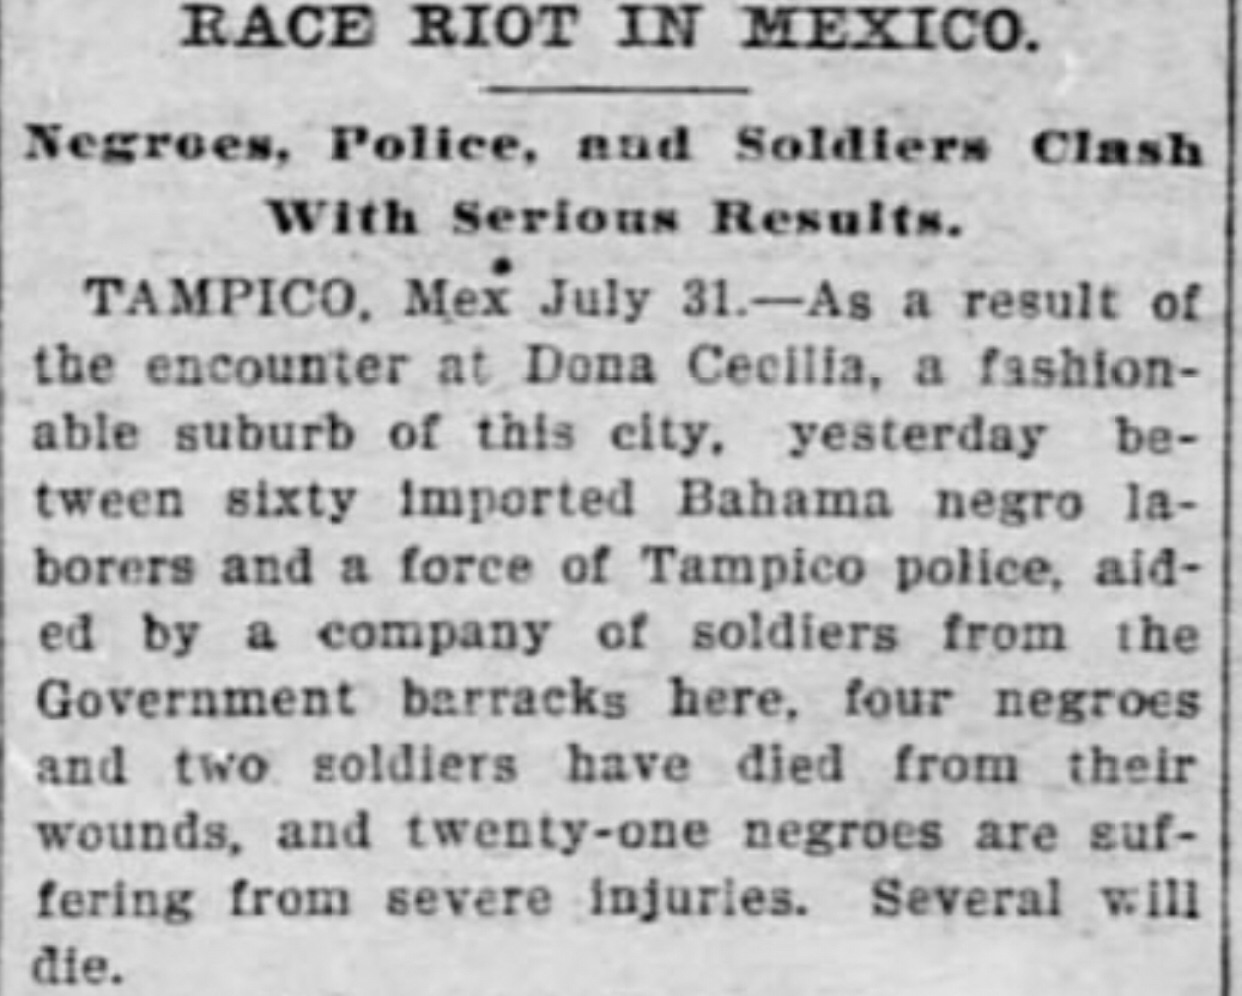 Bahamian negroes killed in riot in Mexico 1900